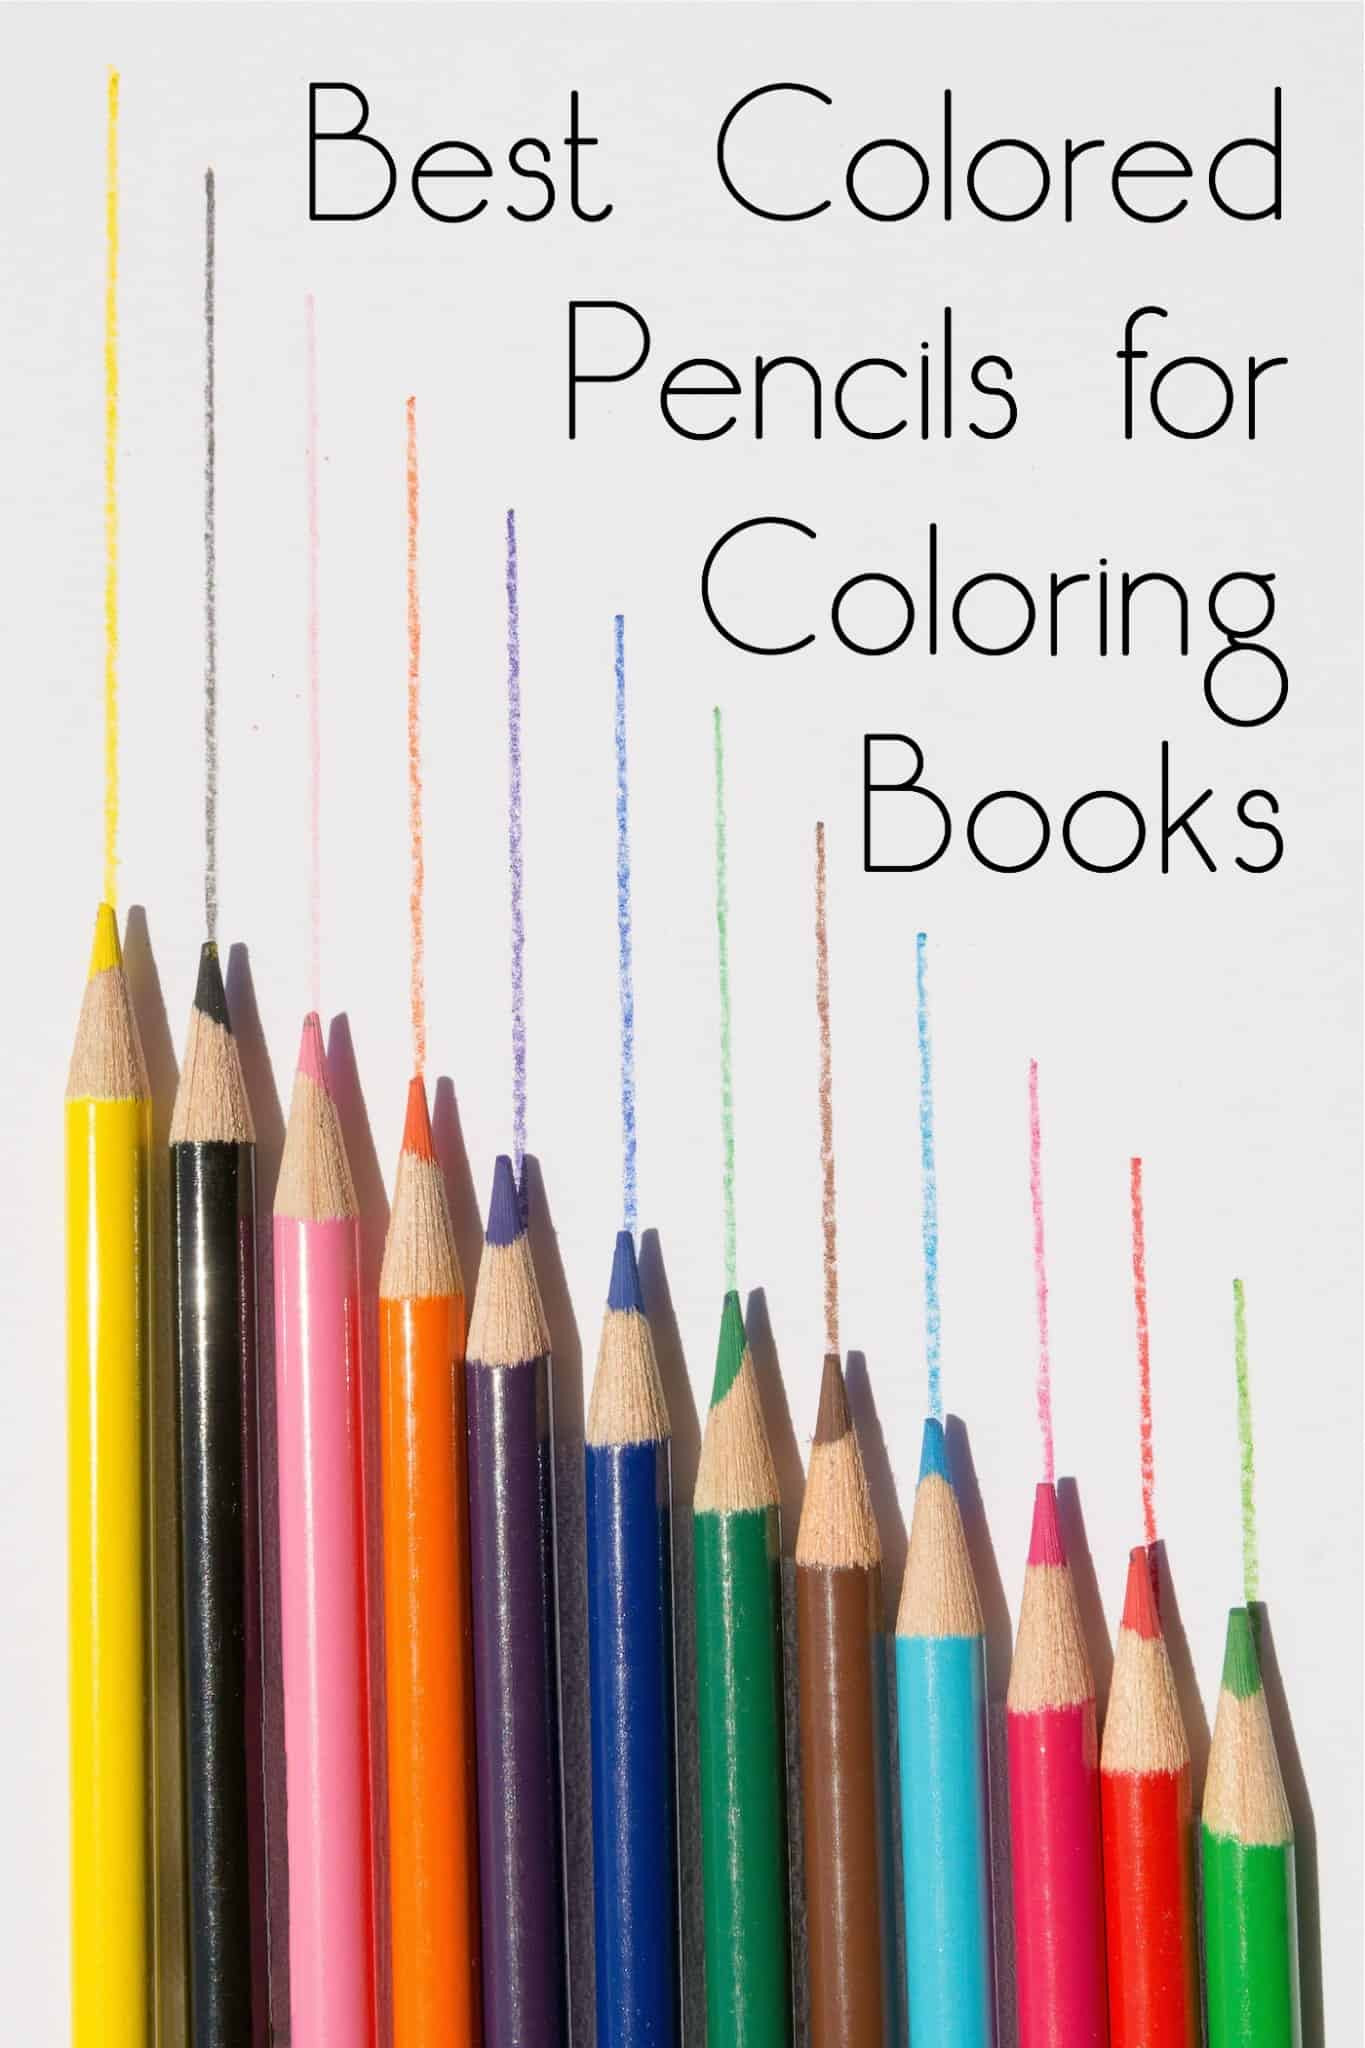 Coloring Pencils For Adult Coloring Books  Best Colored Pencils for Coloring Books diycandy